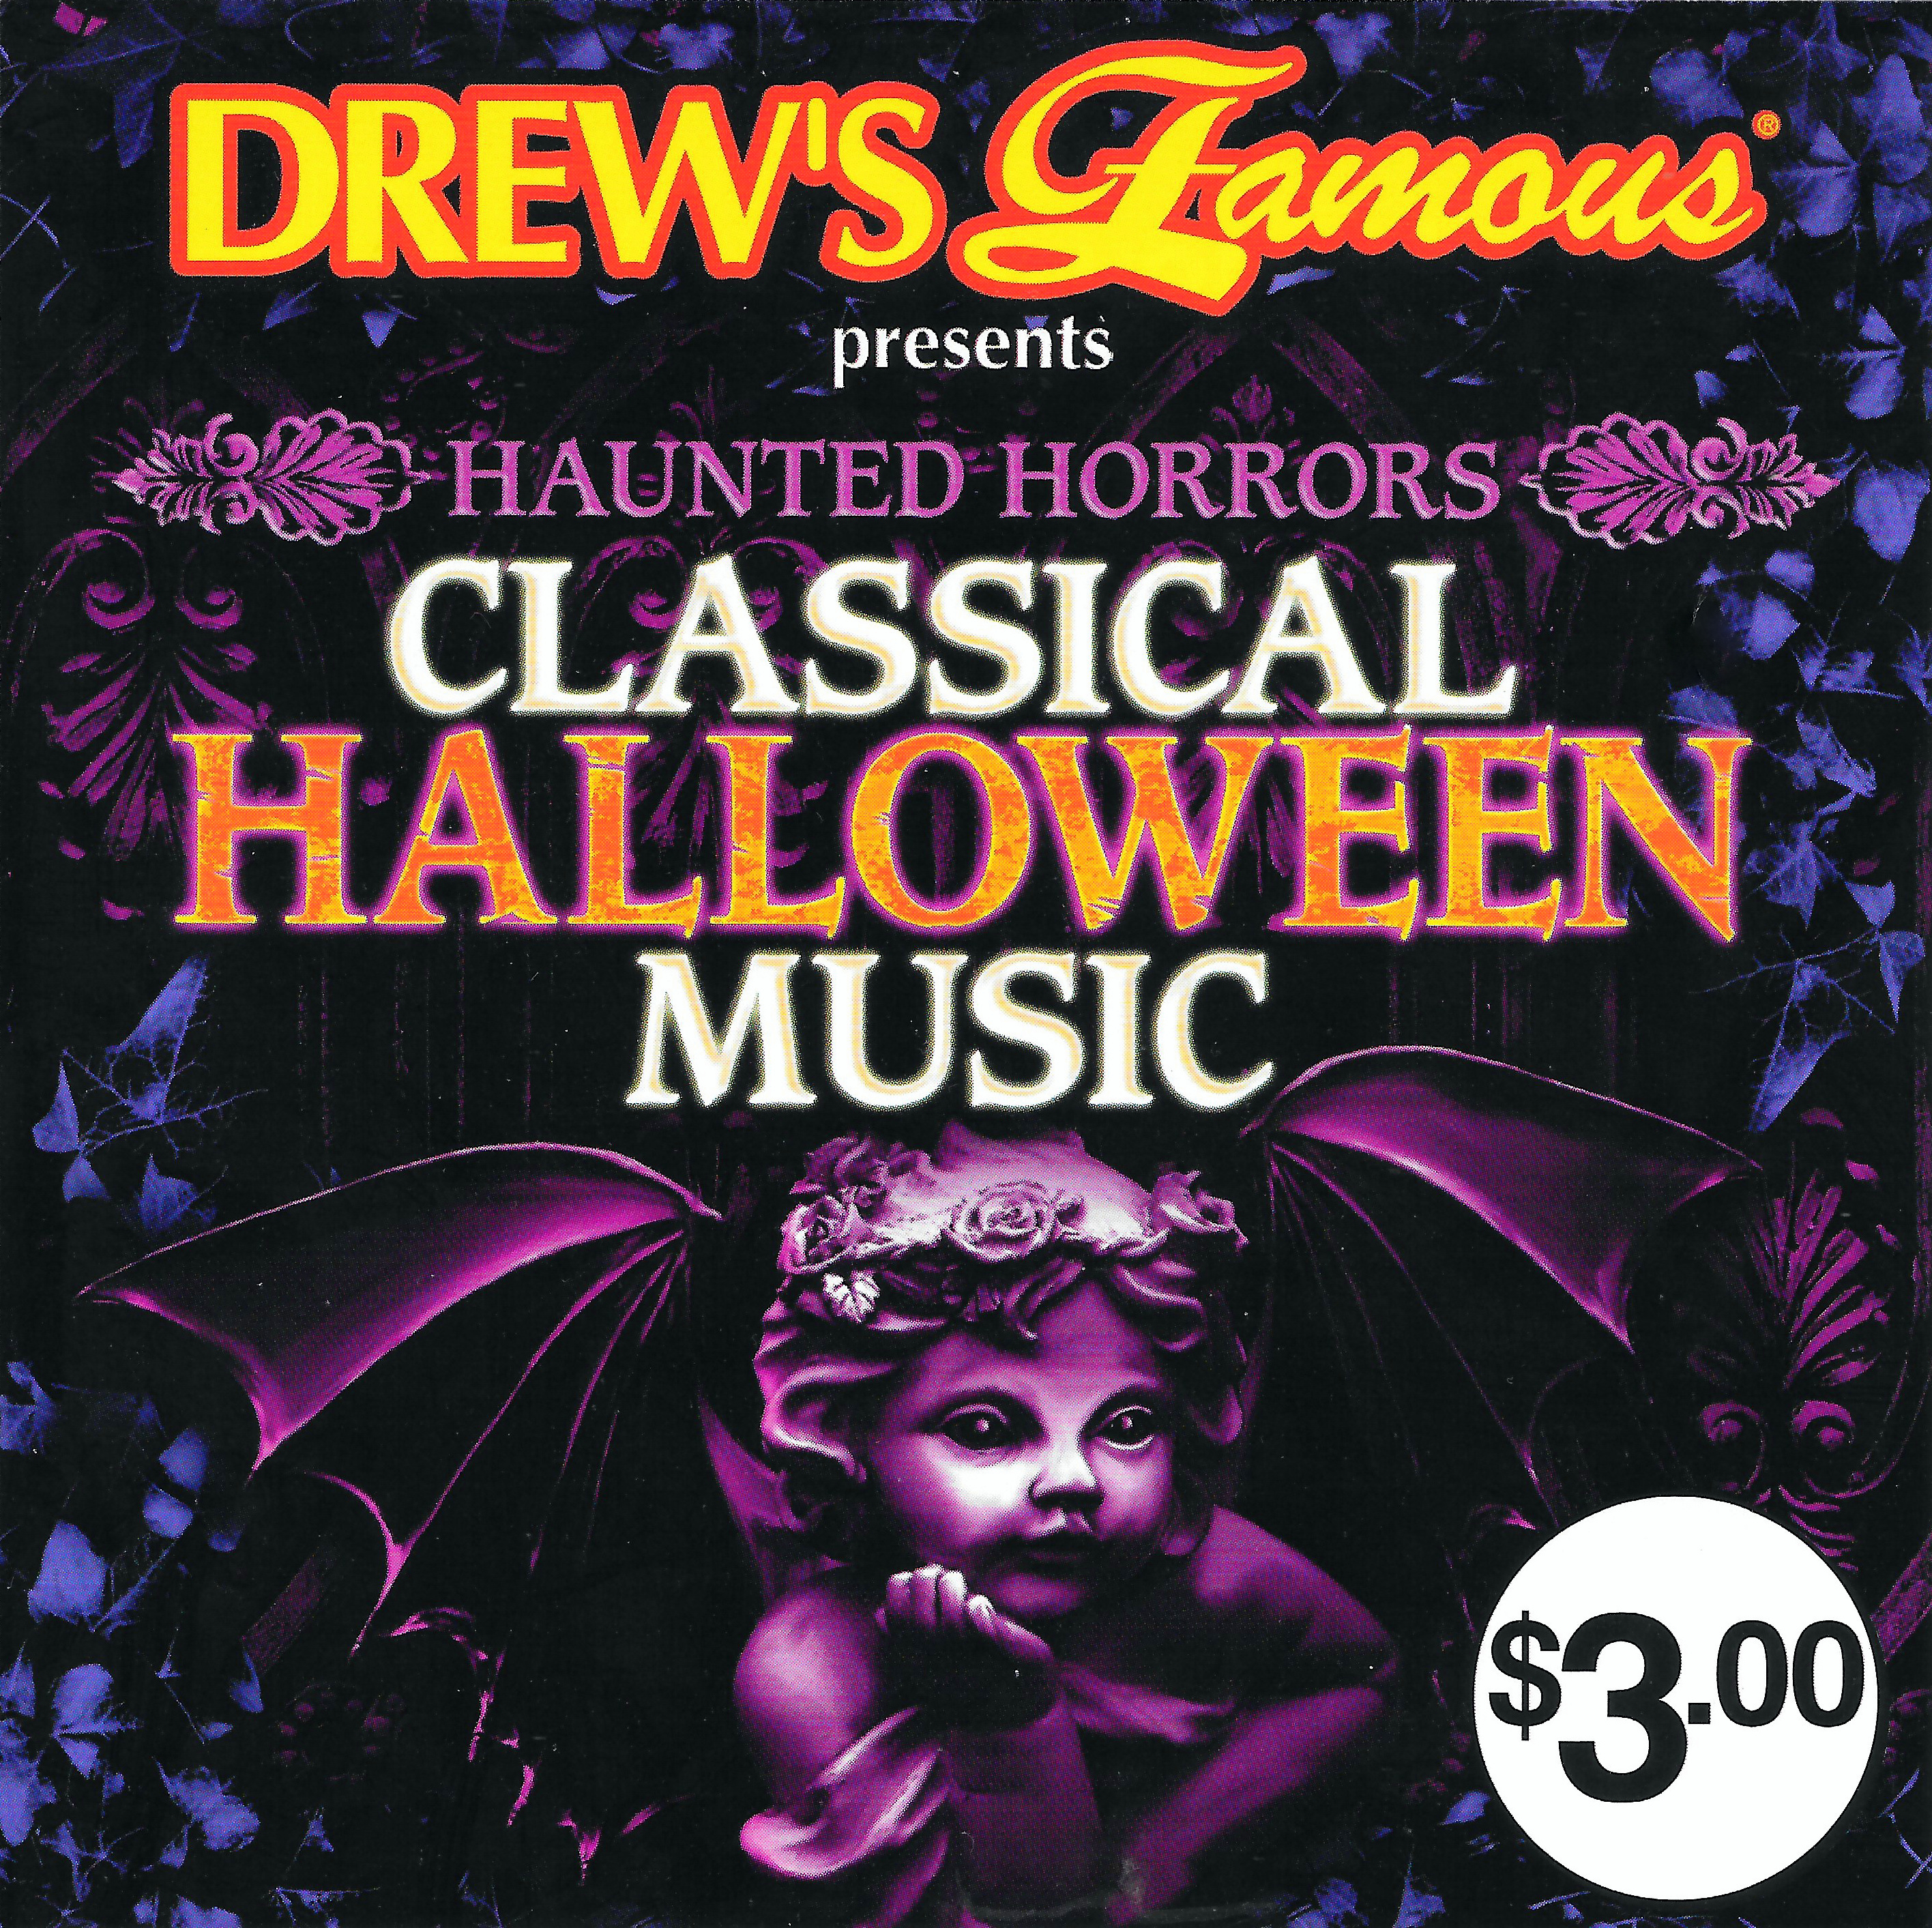 drew's famous presents haunted horrors: classical halloween music